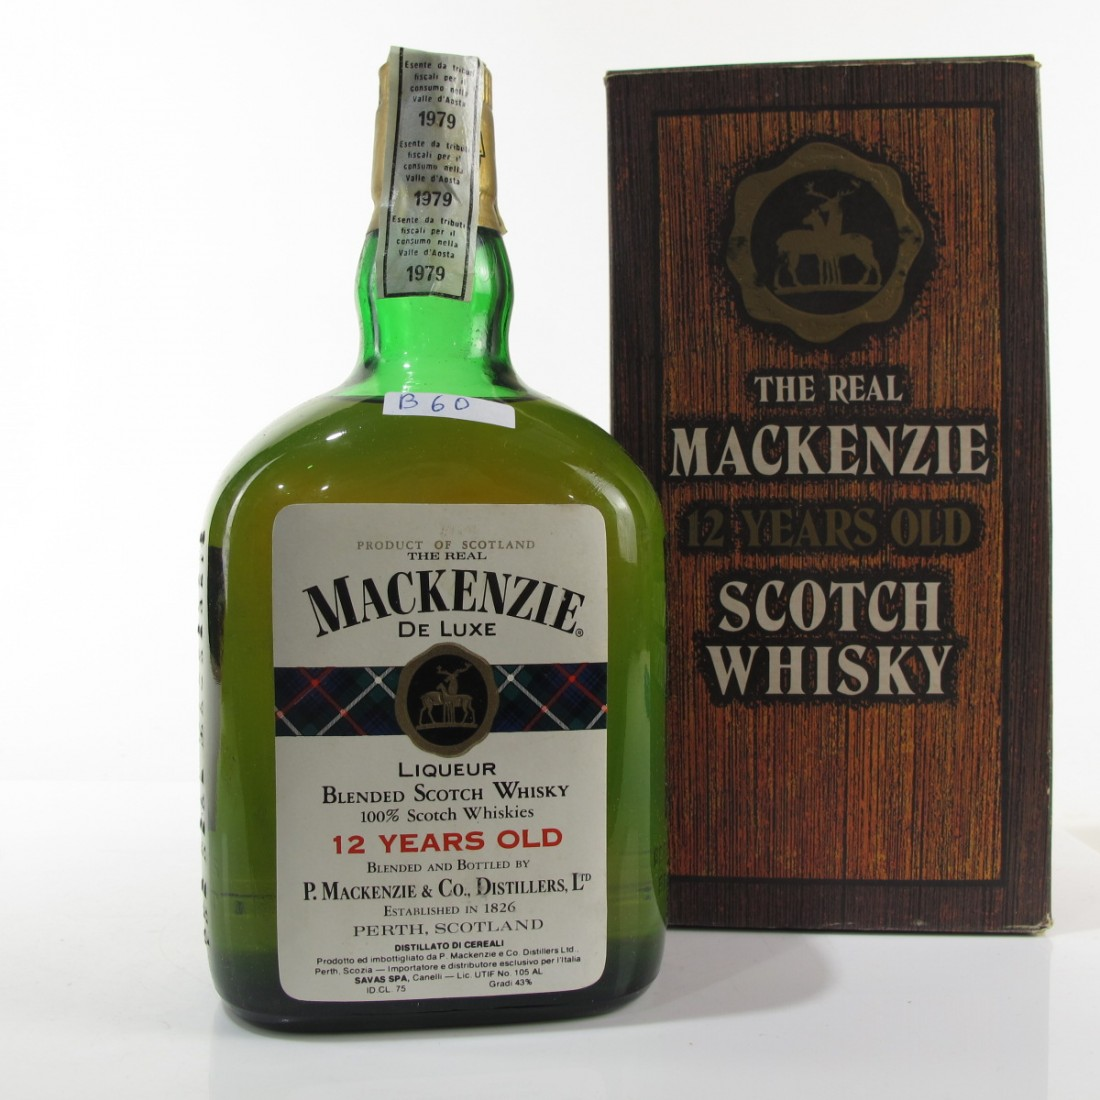 The Real Mackenzie 12 Year Old De Luxe Scotch Whisky 1970s